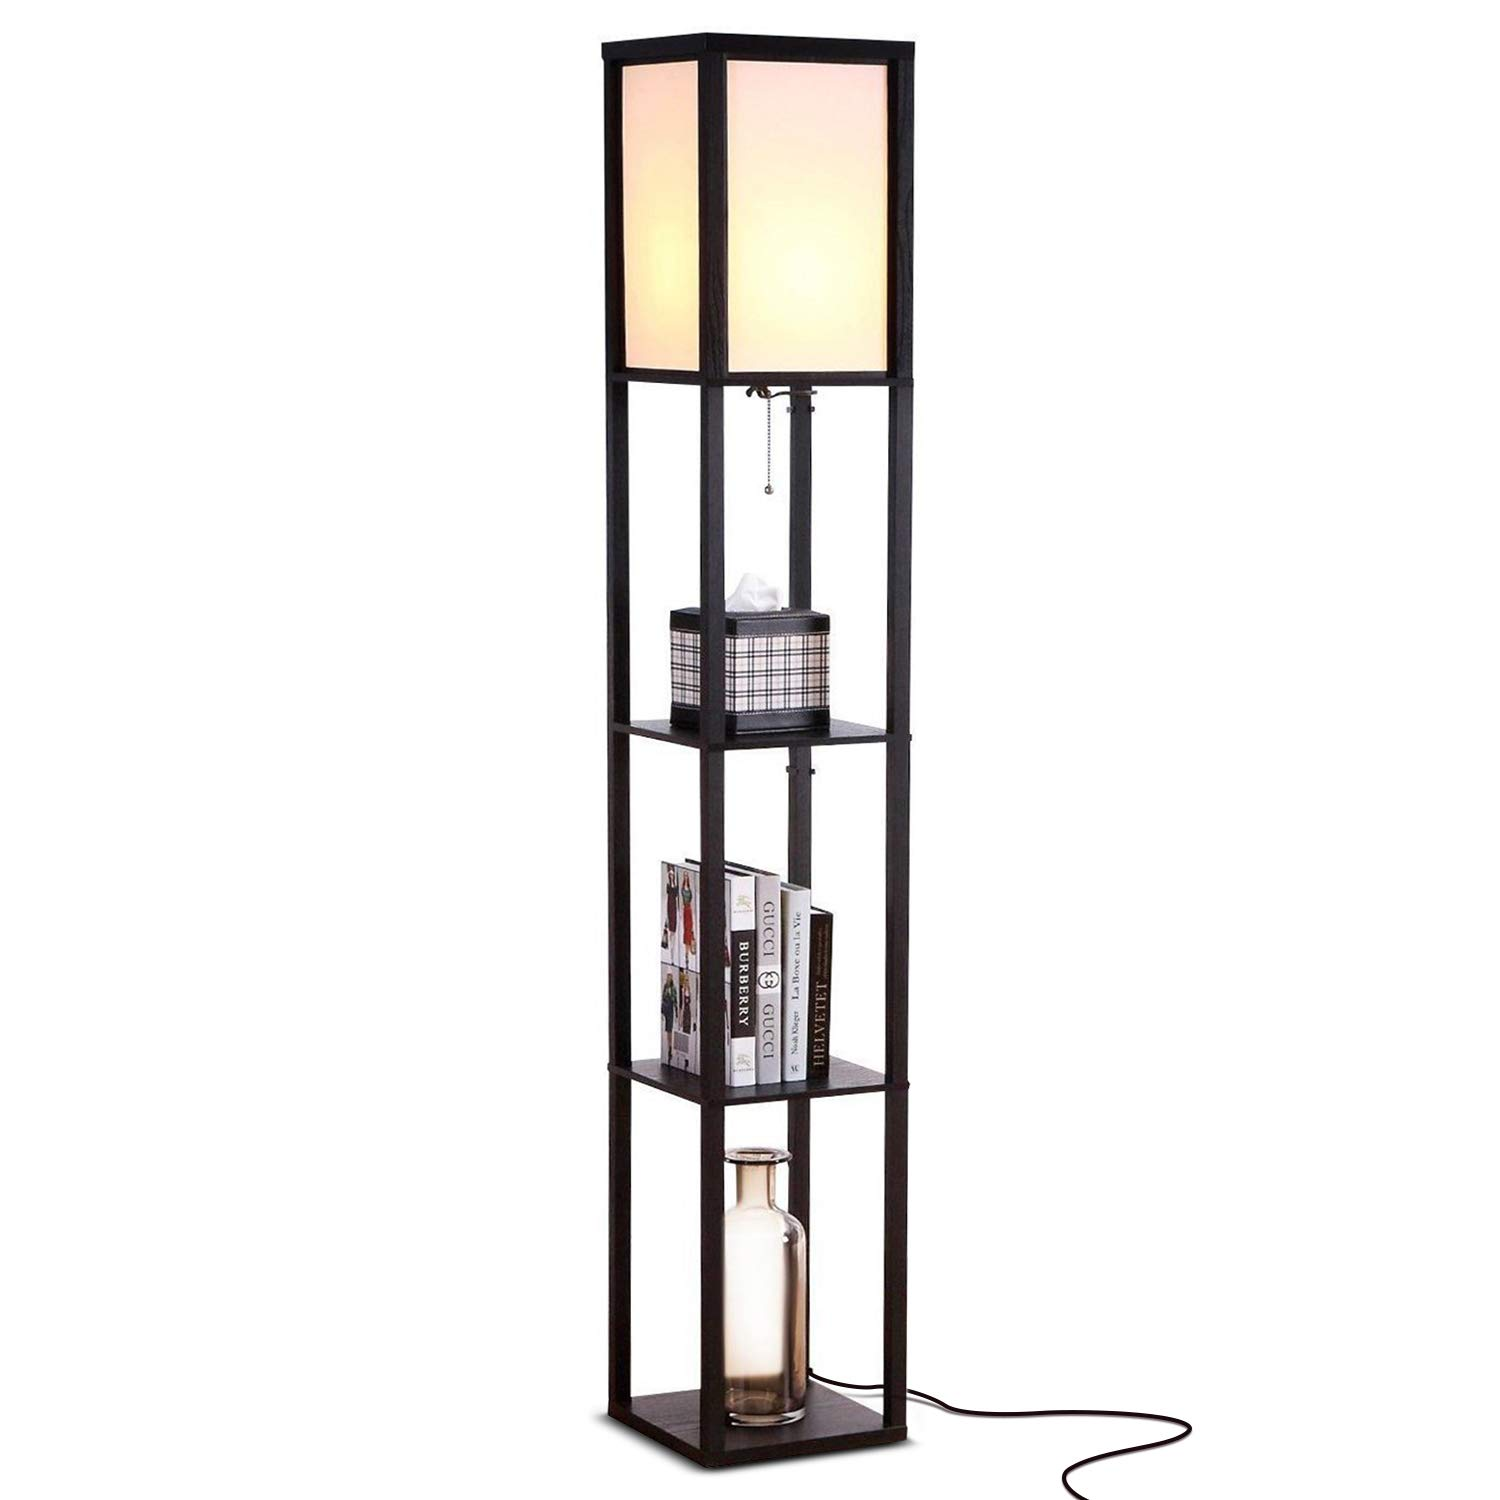 Brightech Maxwell - LED Shelf Floor Lamp - Modern Standing Light for Living Rooms & Bedrooms - Asian Wooden Frame with Open Box Display Shelves - Black by Brightech